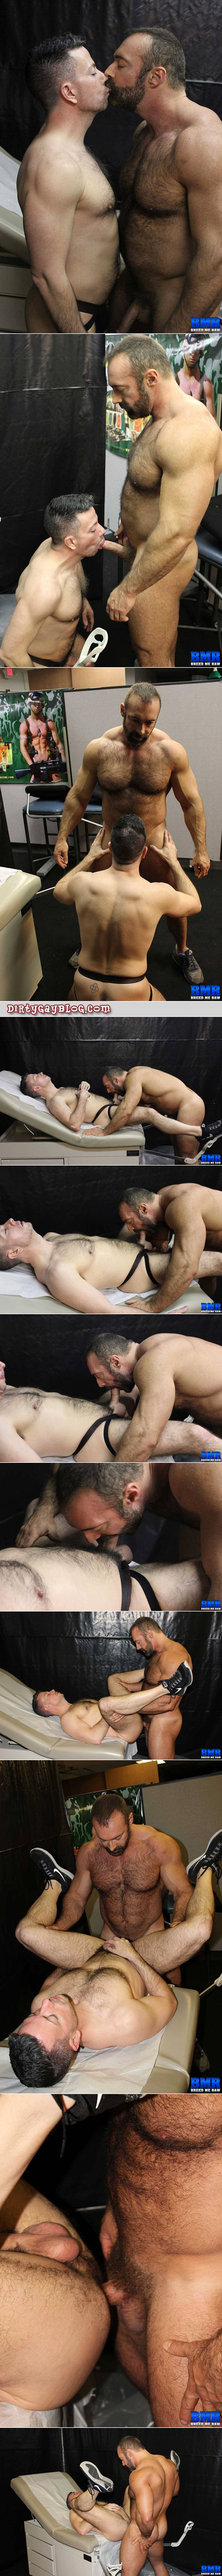 Beefy Daddy bear fucking a guy on a doctor's examination table.